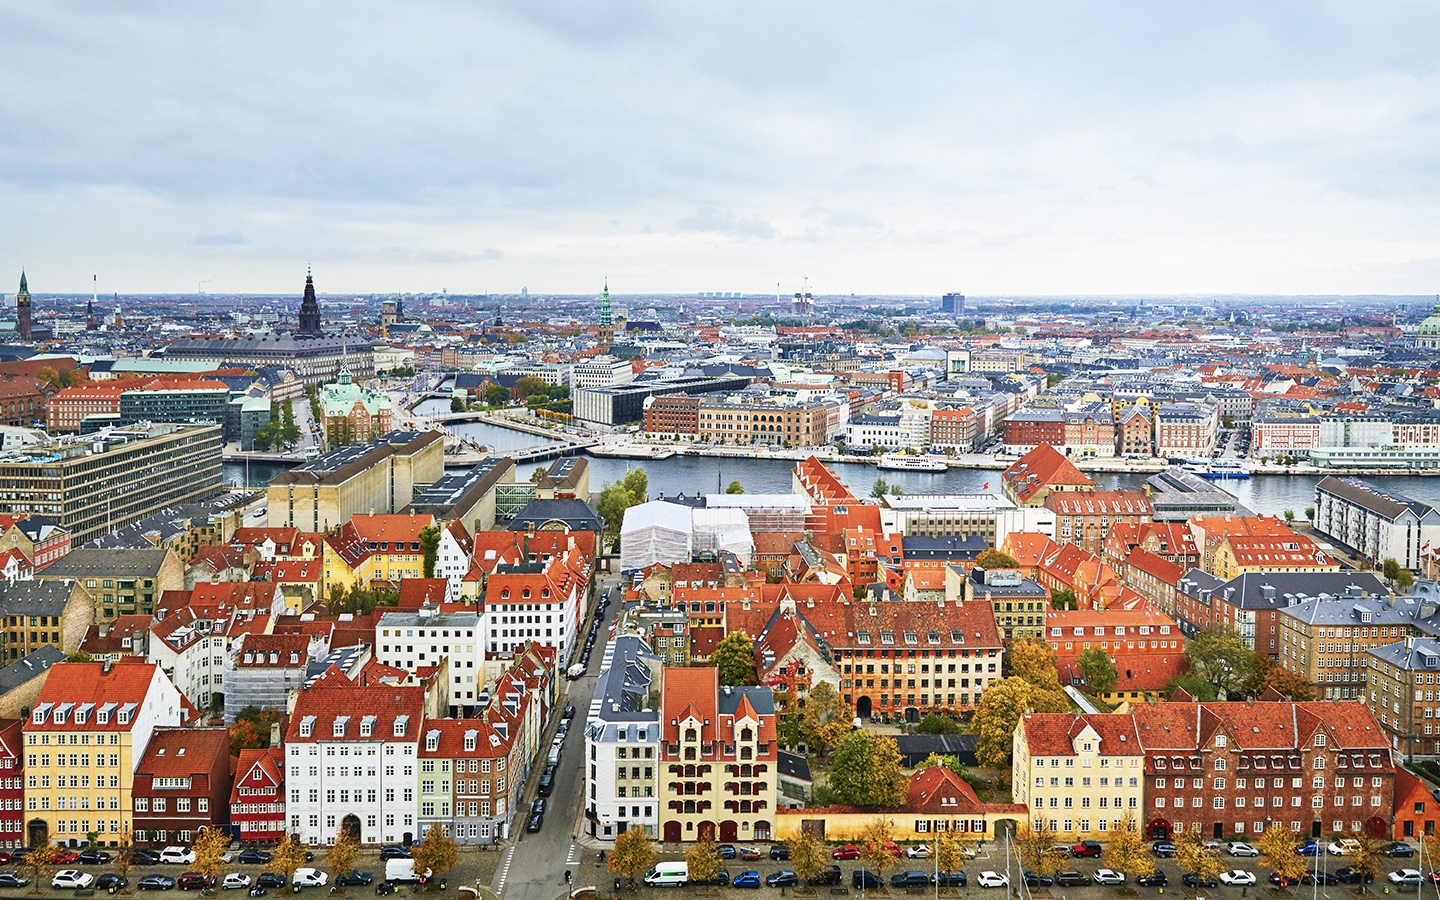 Aerial view of Copenhagen